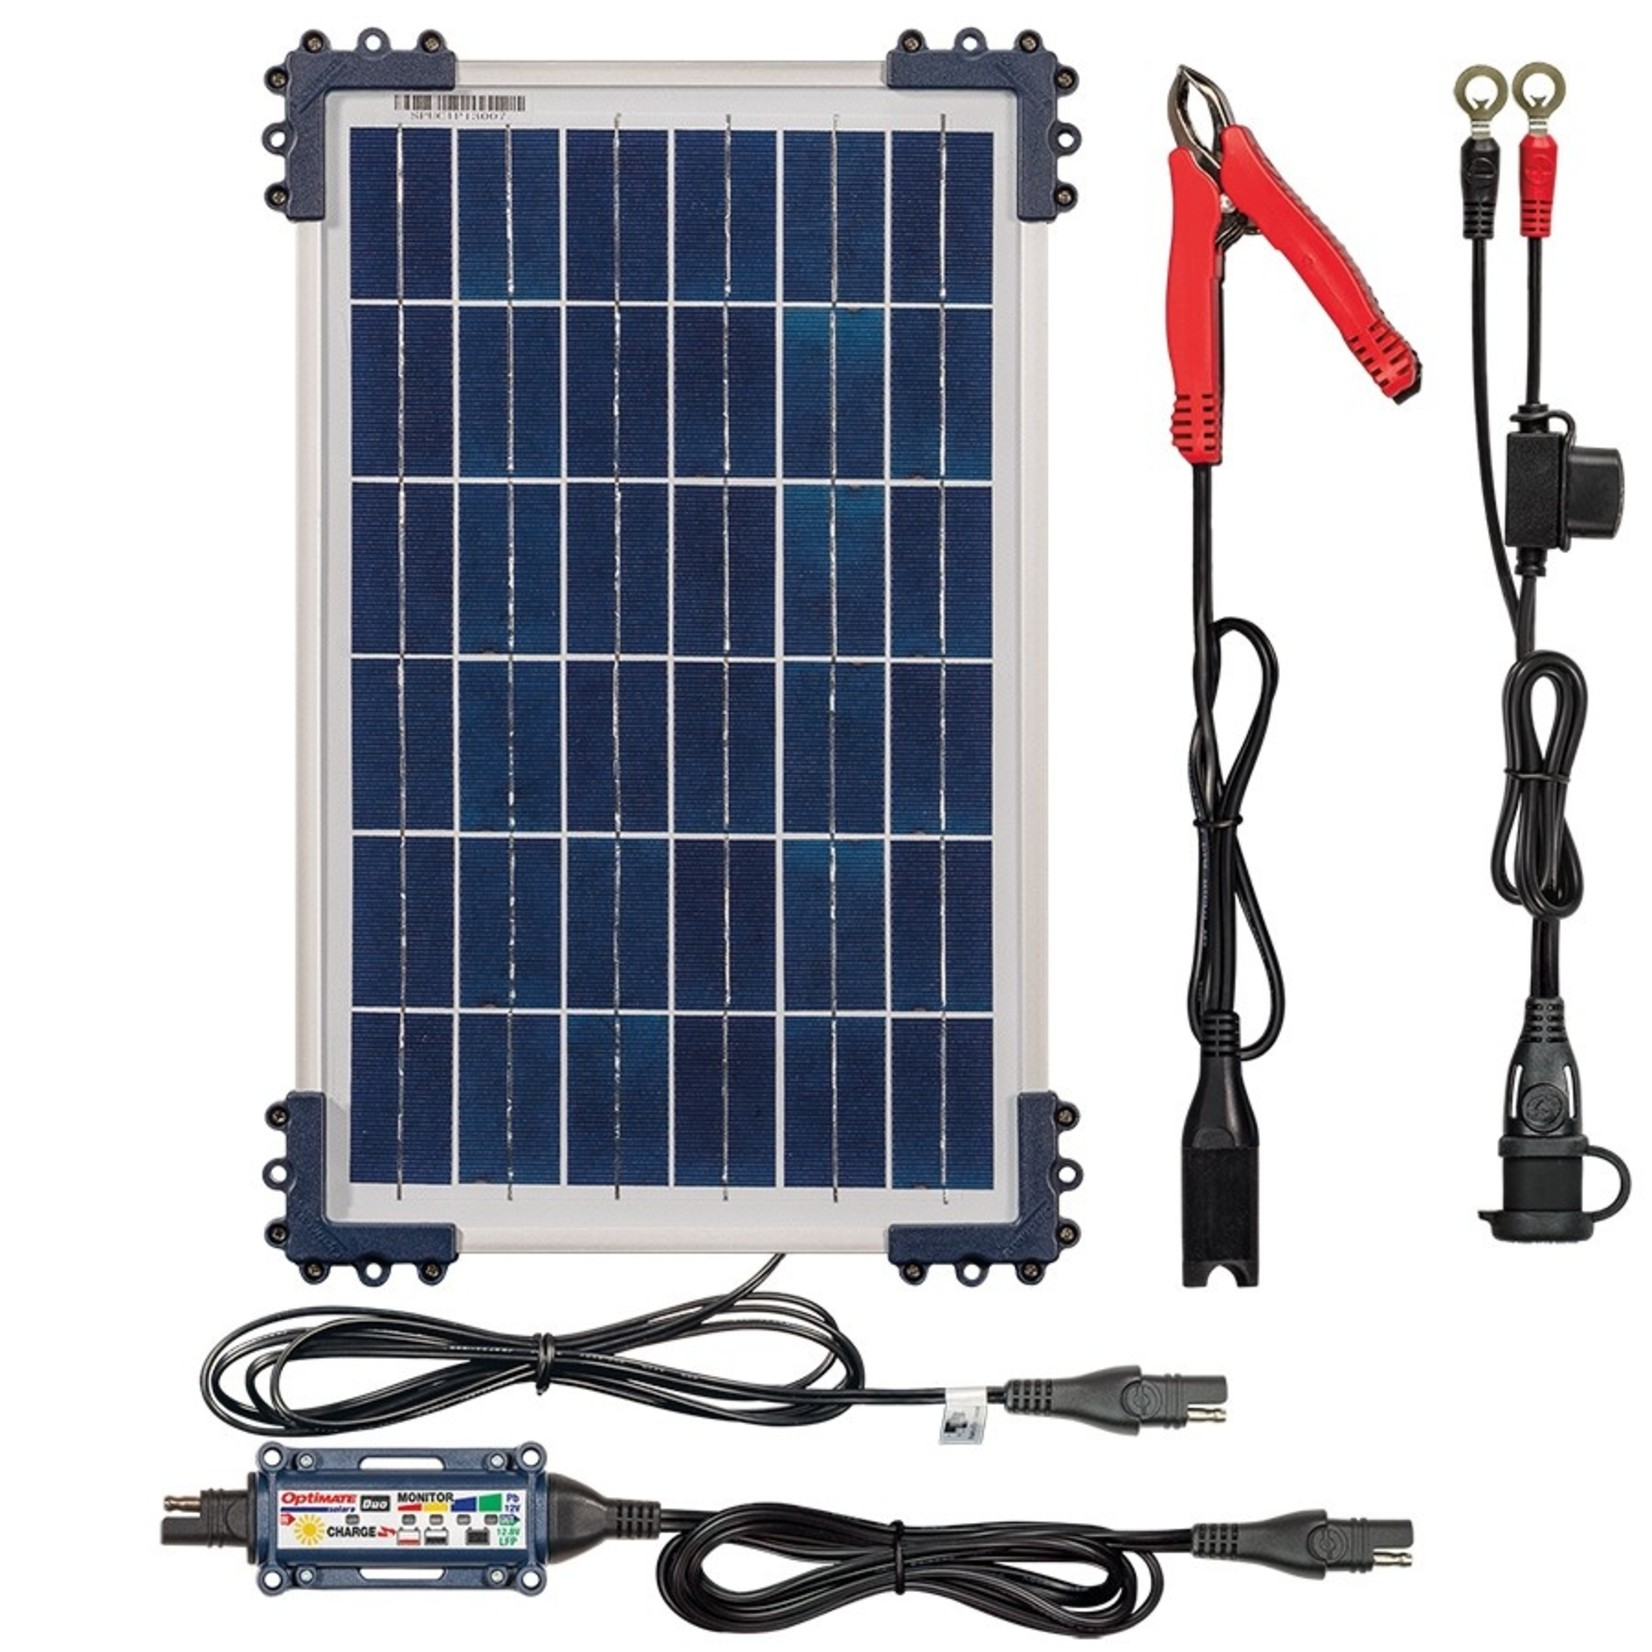 OptiMate DUO Solar 10W - Battery Charger